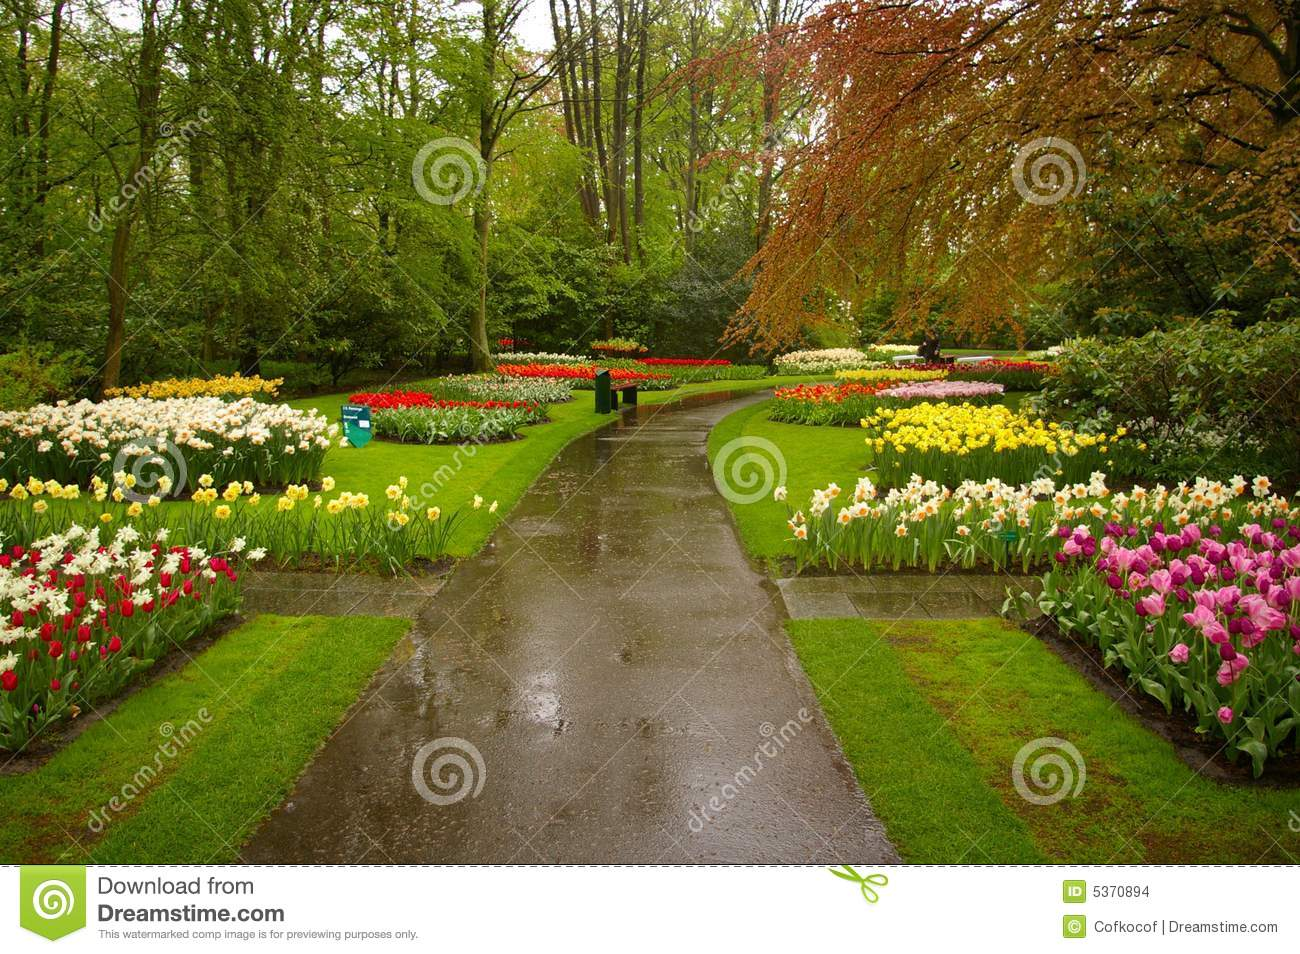 Http Www Dreamstime Com Stock Images Beautiful Park Image5370894